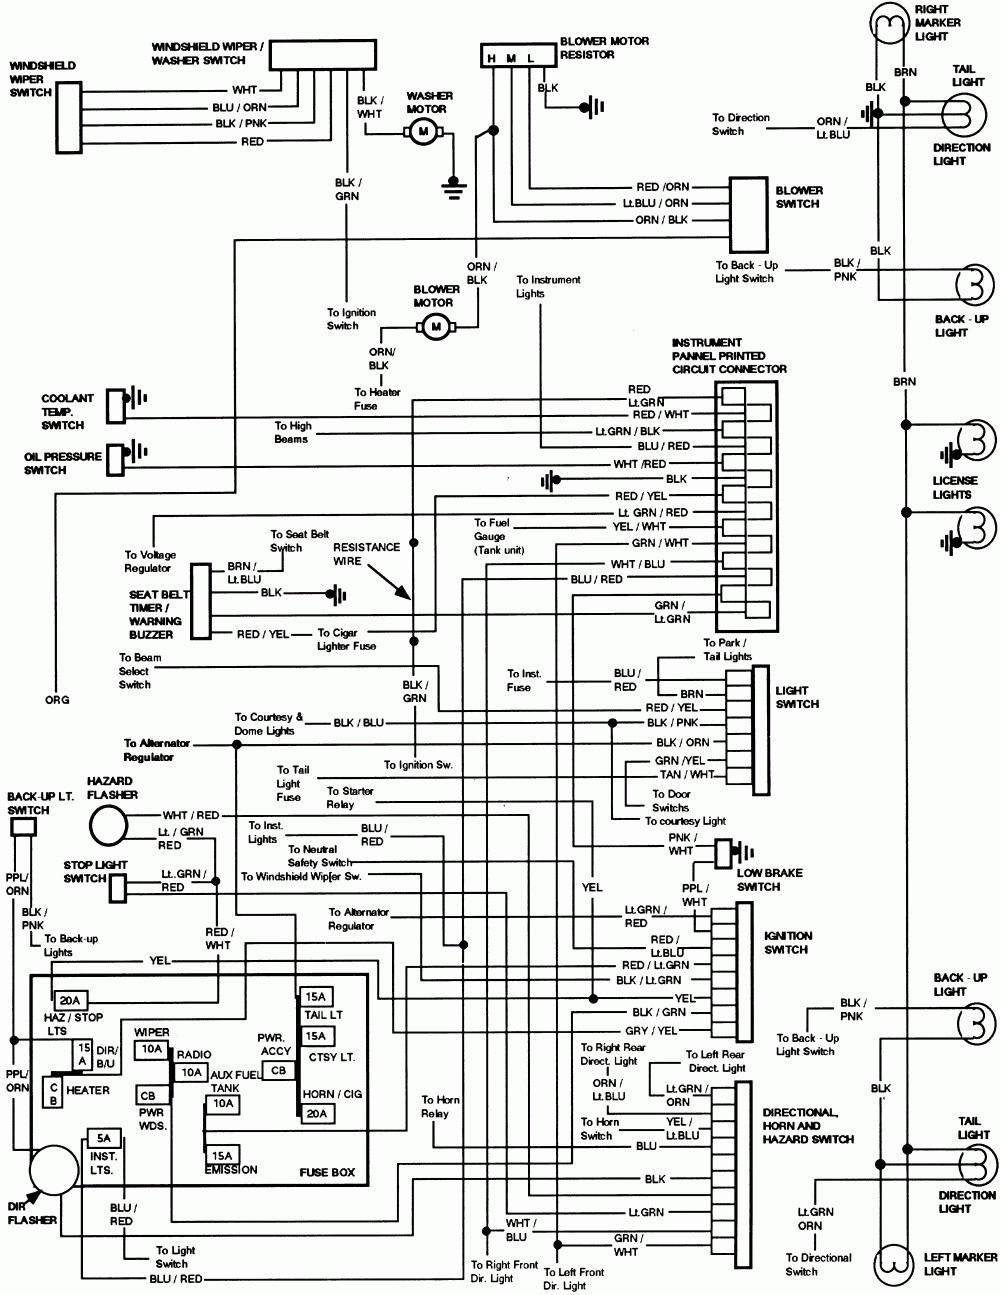 hight resolution of diagram also mustang wiring harness diagram on 1986 mustang wiring diagram also mustang wiring harness diagram on 1986 mustang wiring